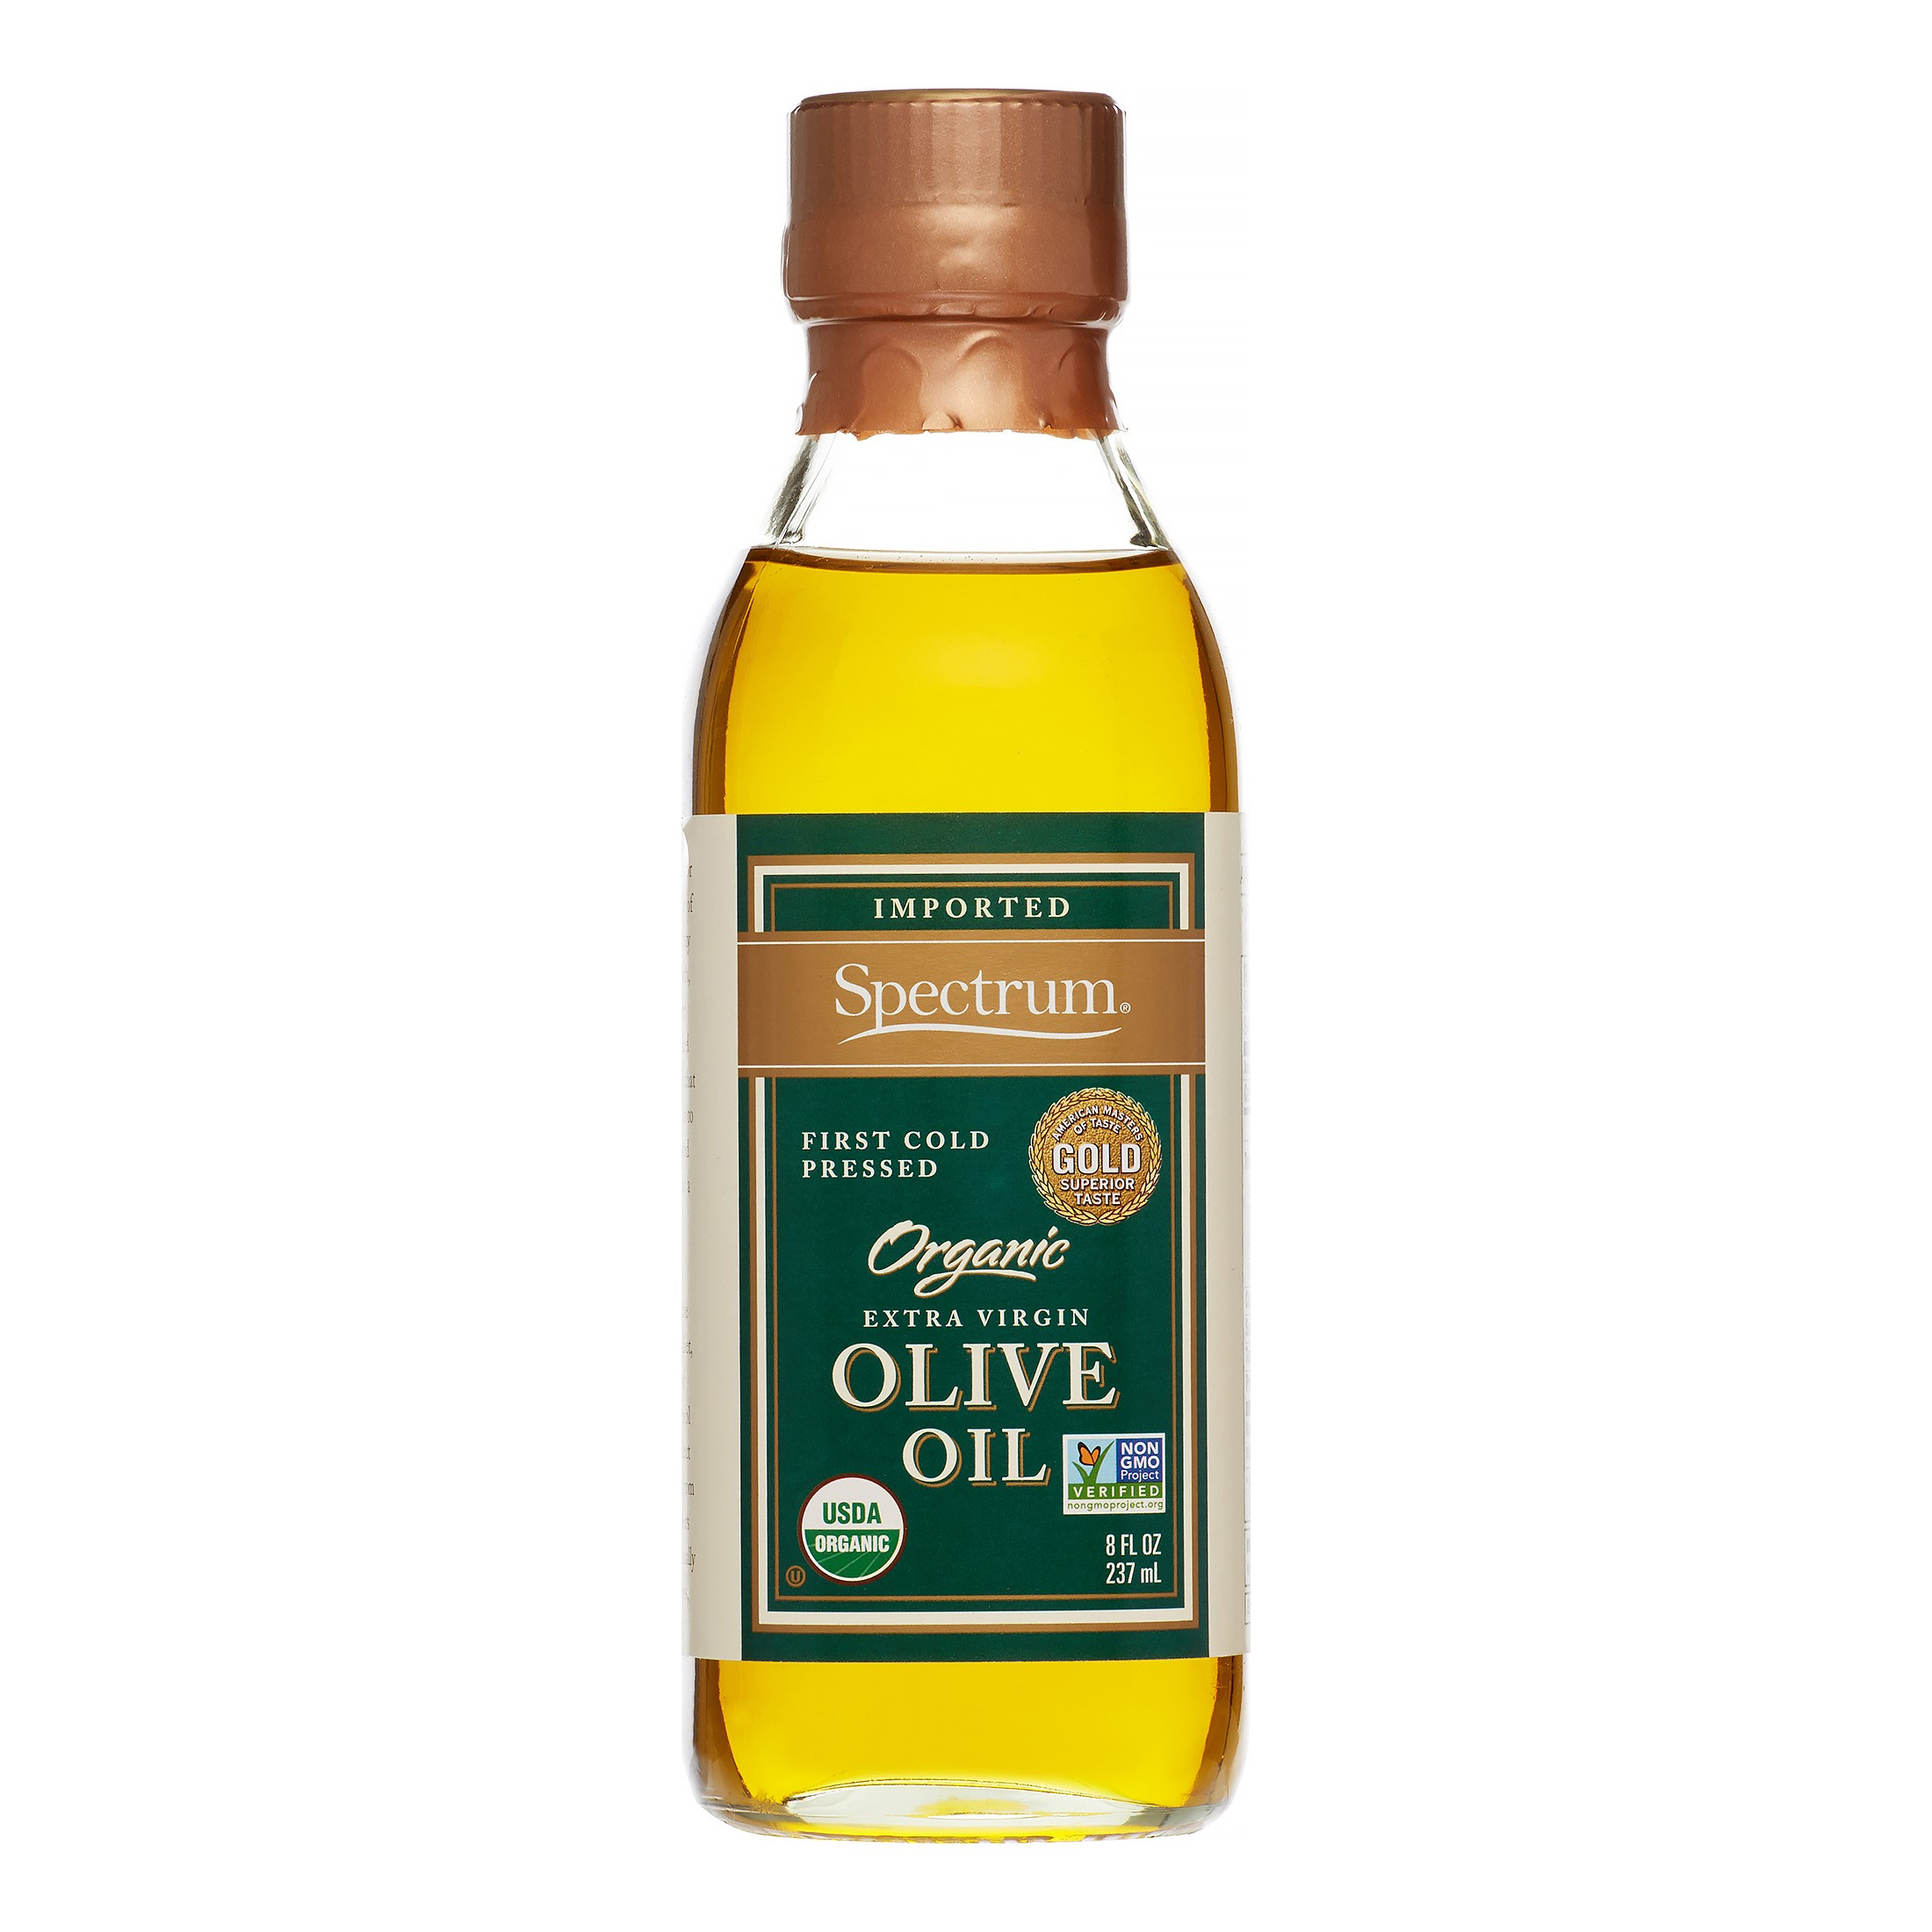 Spectrum Organic Extra Virgin Imported Olive Oil, 8.5 Fl Oz